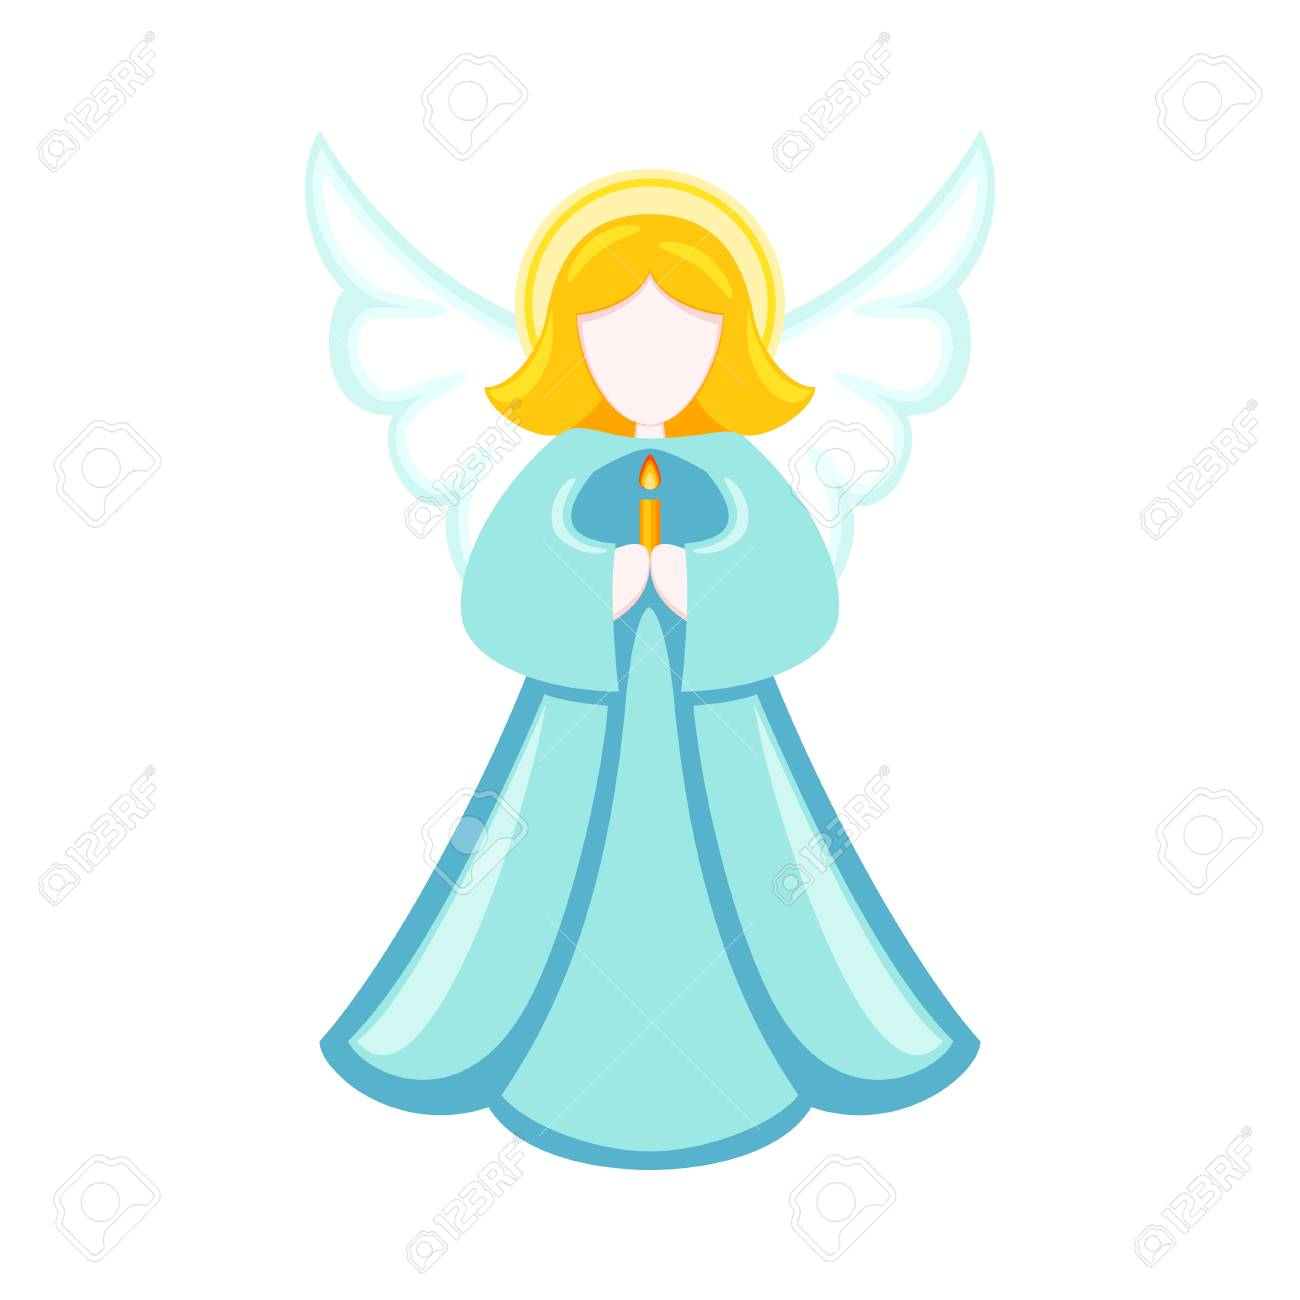 Colorful cartoon christmas angel. Religion symbol. Xmas themed vector illustration for icon, logo, stamp, label, badge, certificate, poster or gift card decoration - 108120363